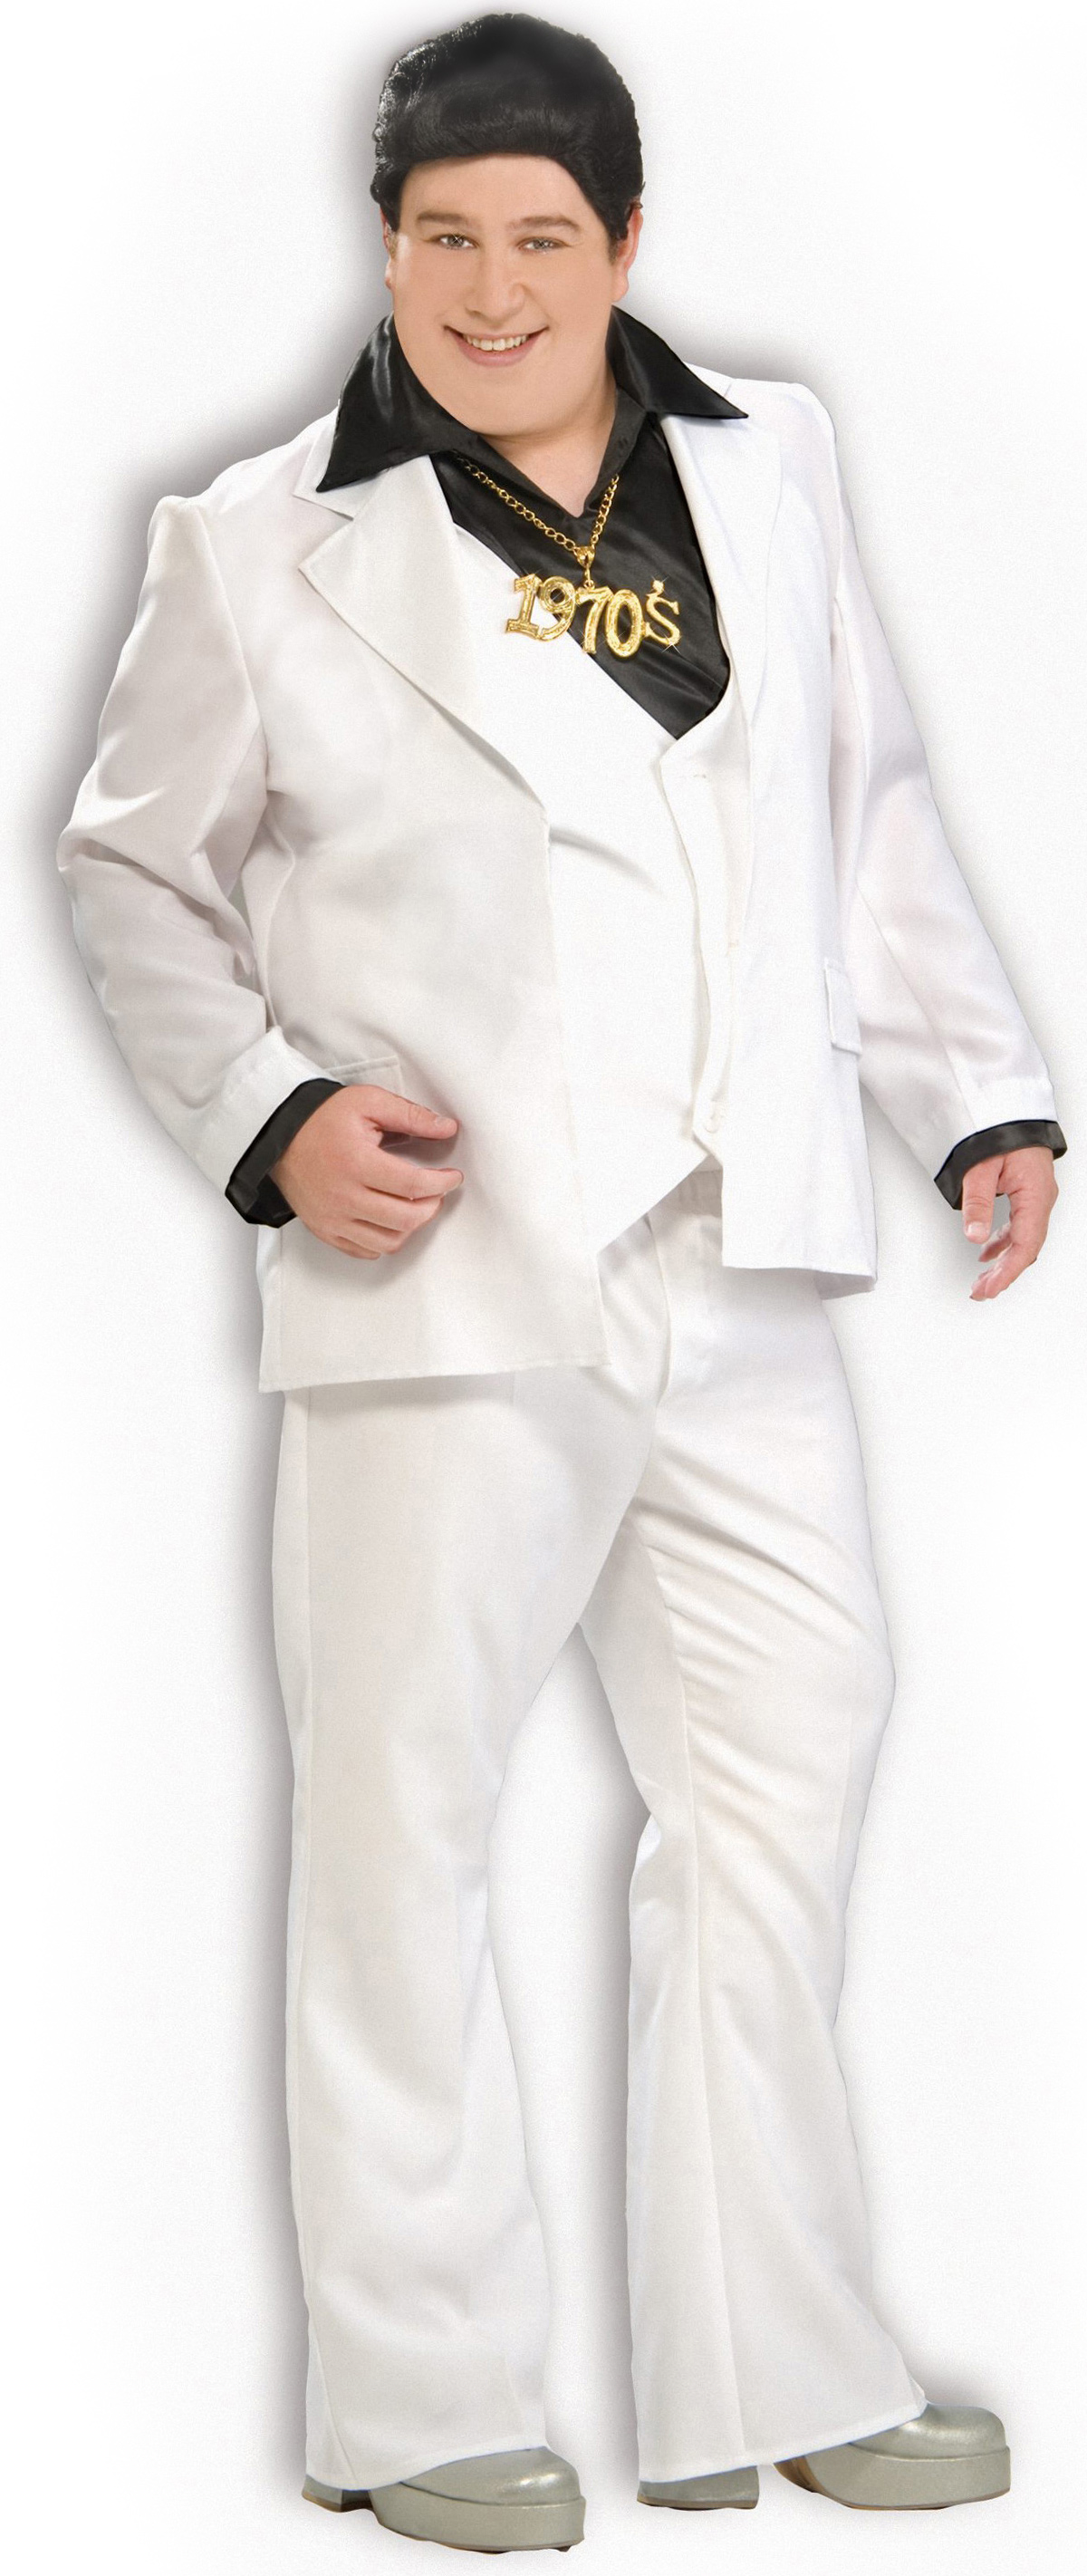 Men's Disco Man Adult Plus Costume - White - Plus (44-48) BS-152362